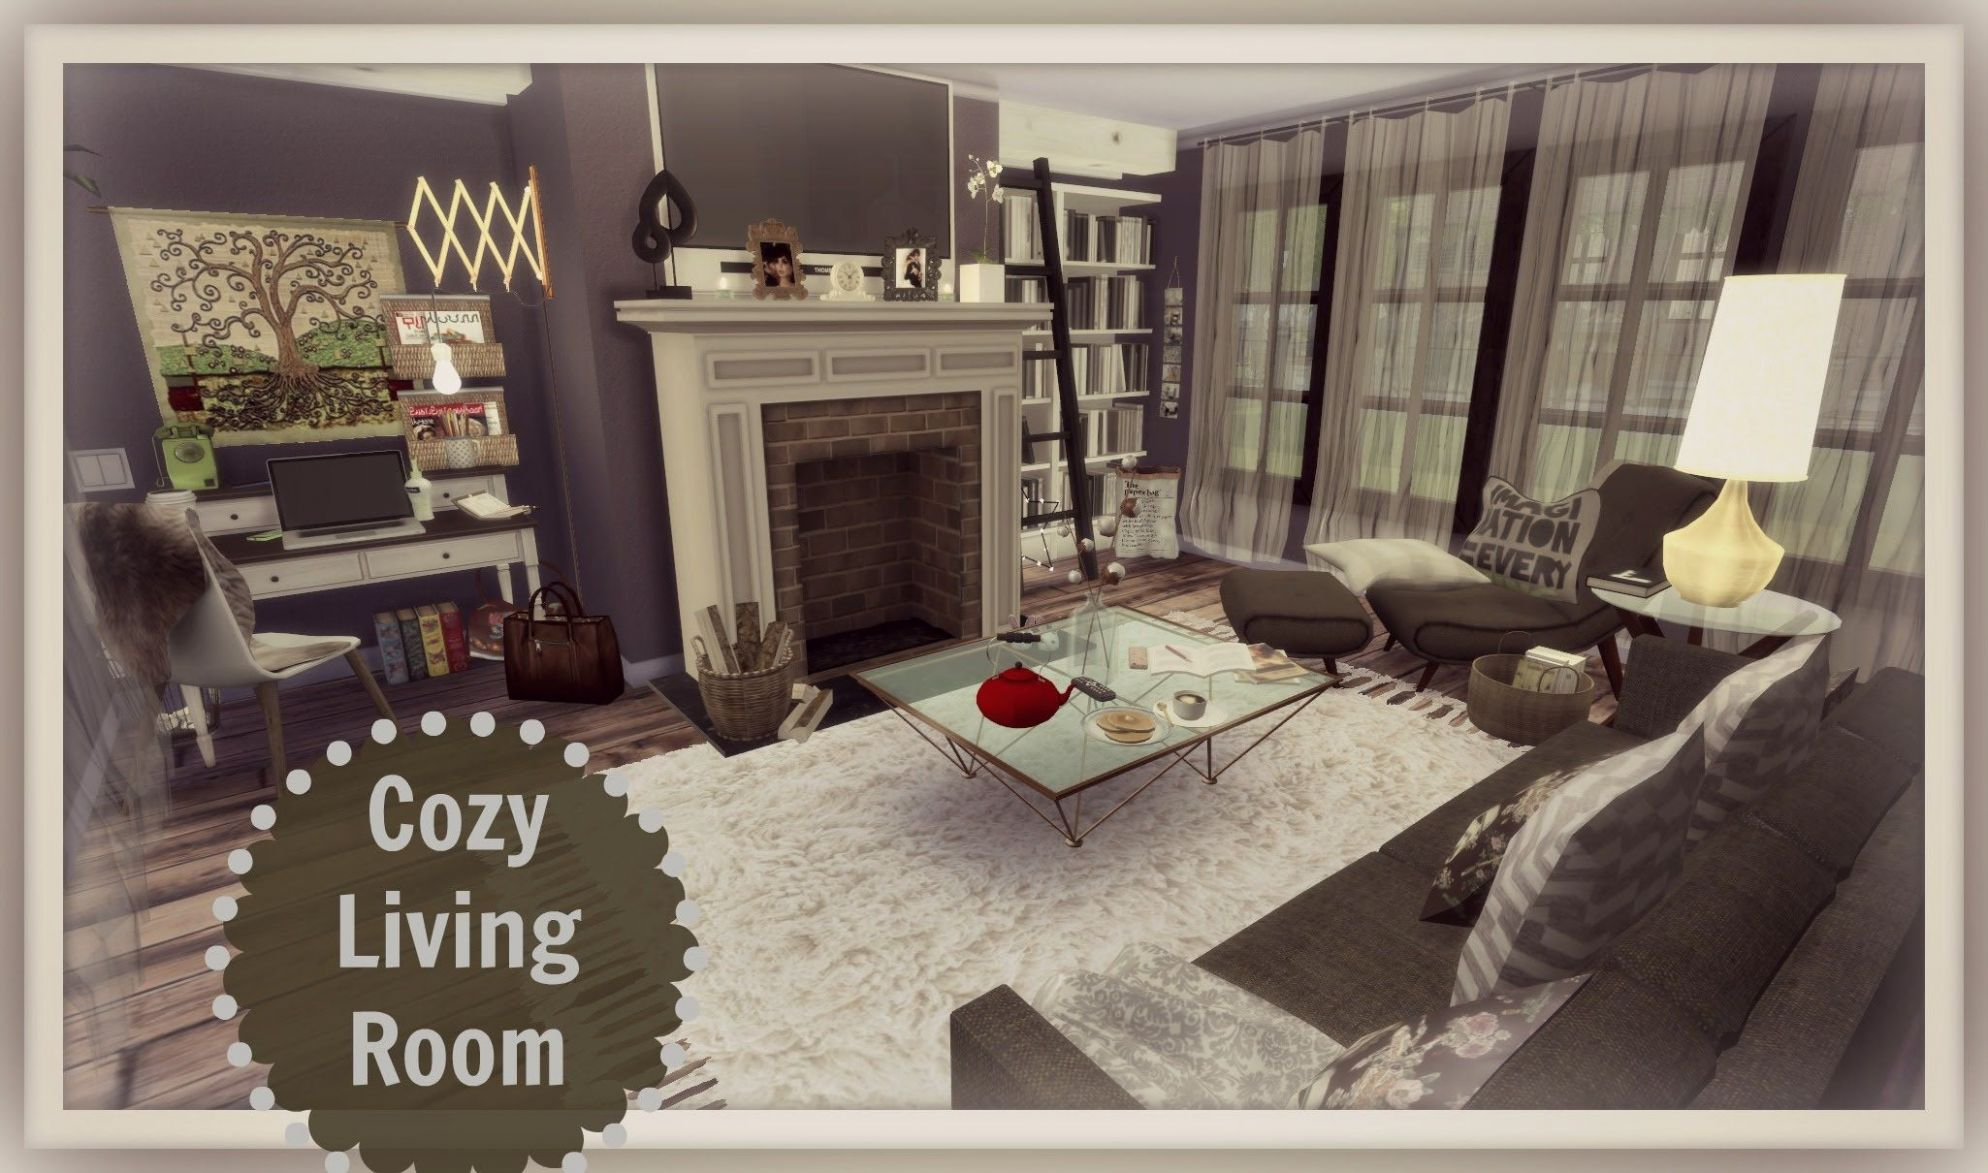 Sims Living Room Ideas - Home Decorating Ideas & Interior Design